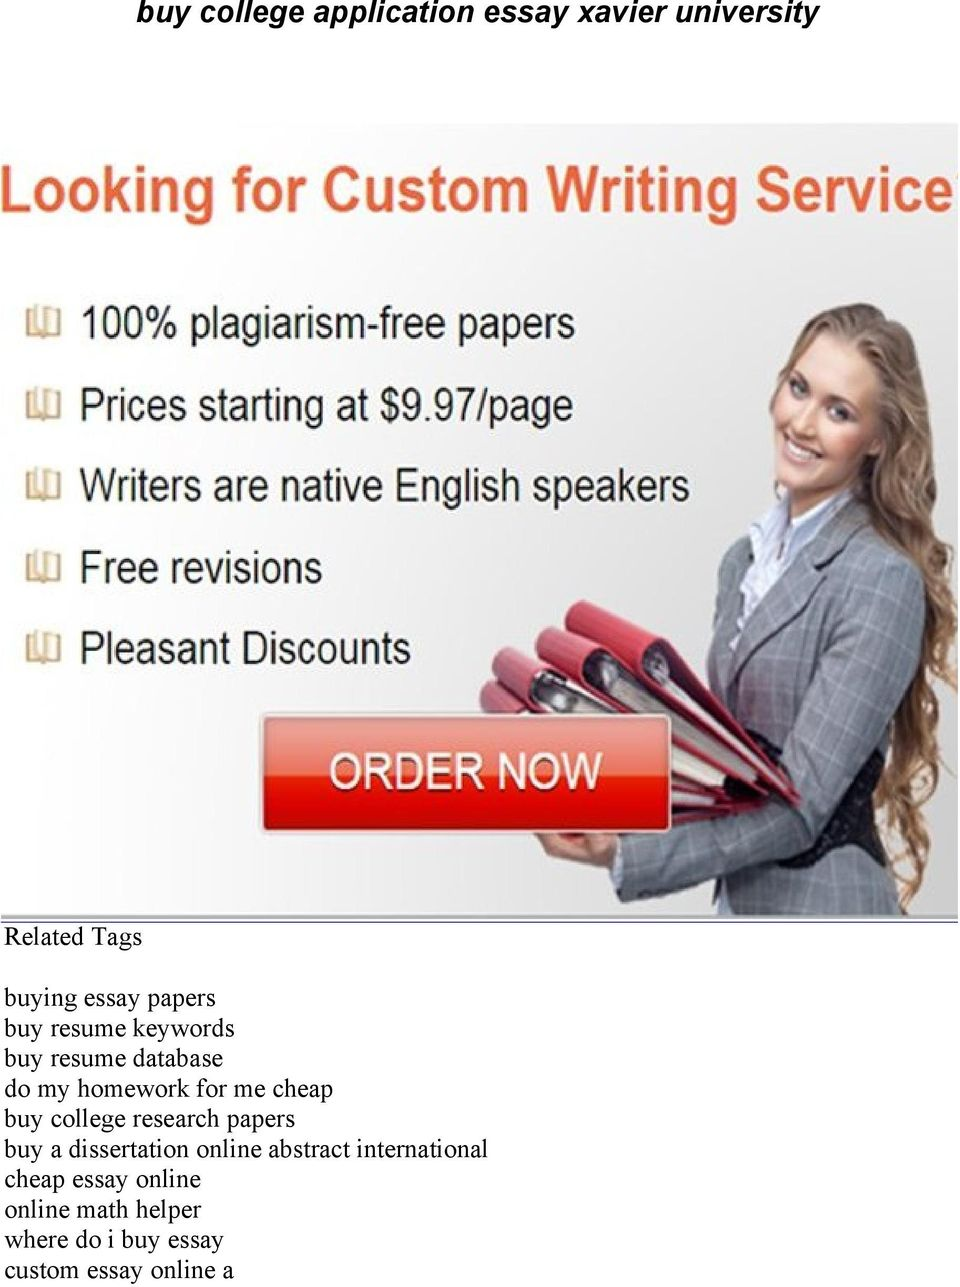 buy college research papers buy a dissertation online abstract international